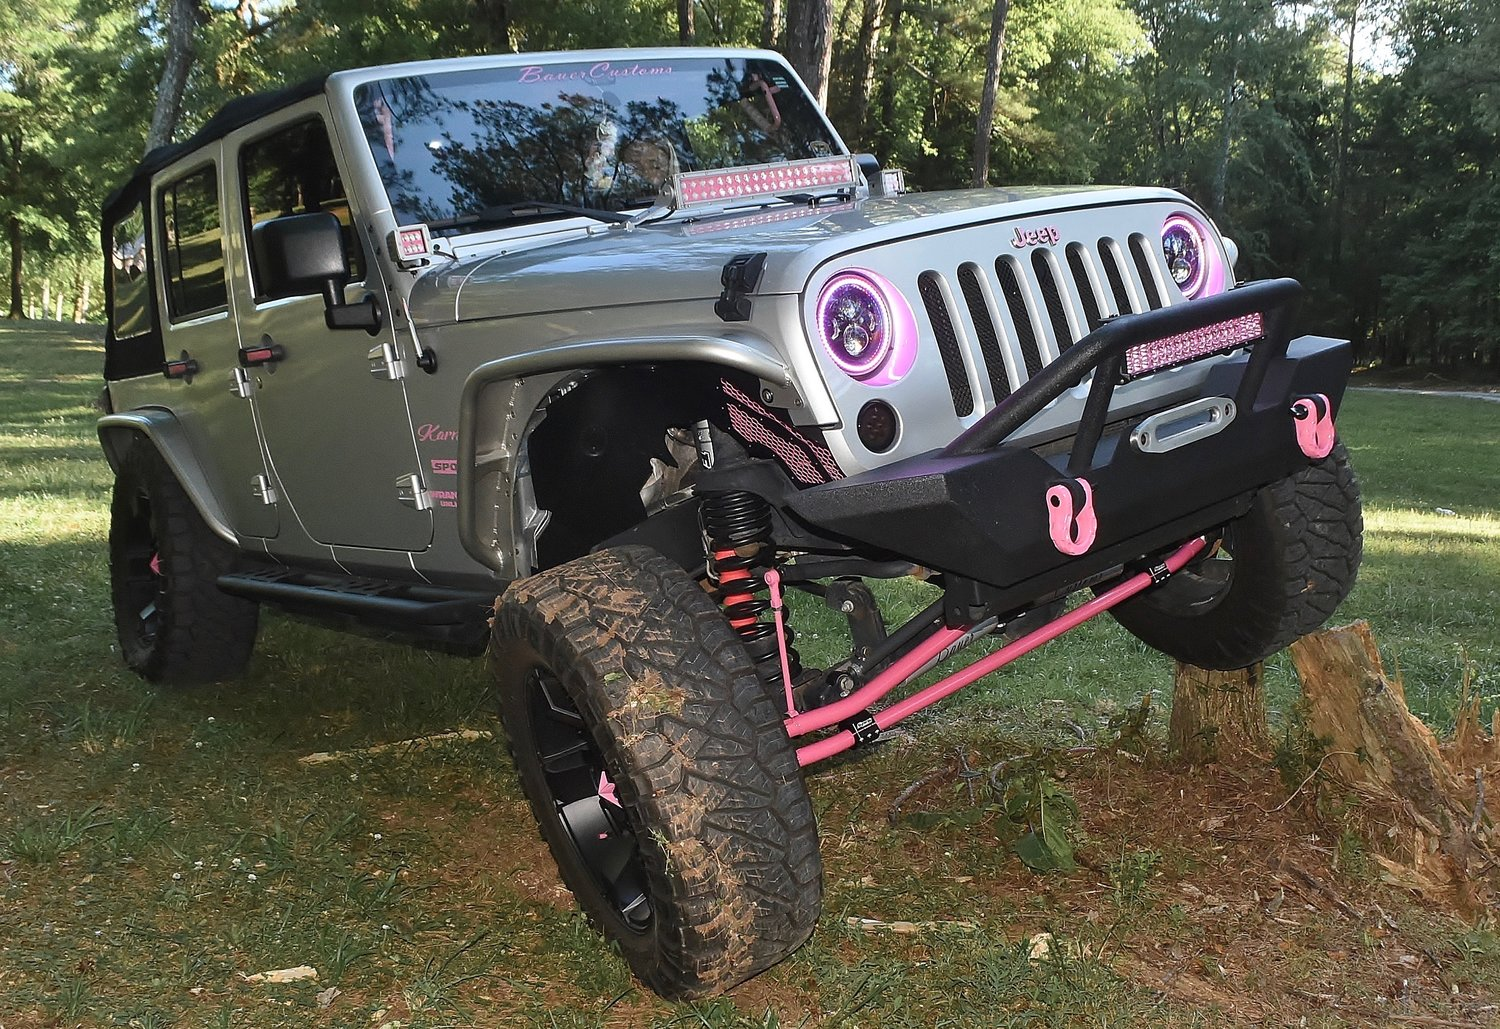 Bartow Krawlers member Kirstyn Bauer, flexing on a pair of stumps, has accessorized her Jeep with a number of pink accents.